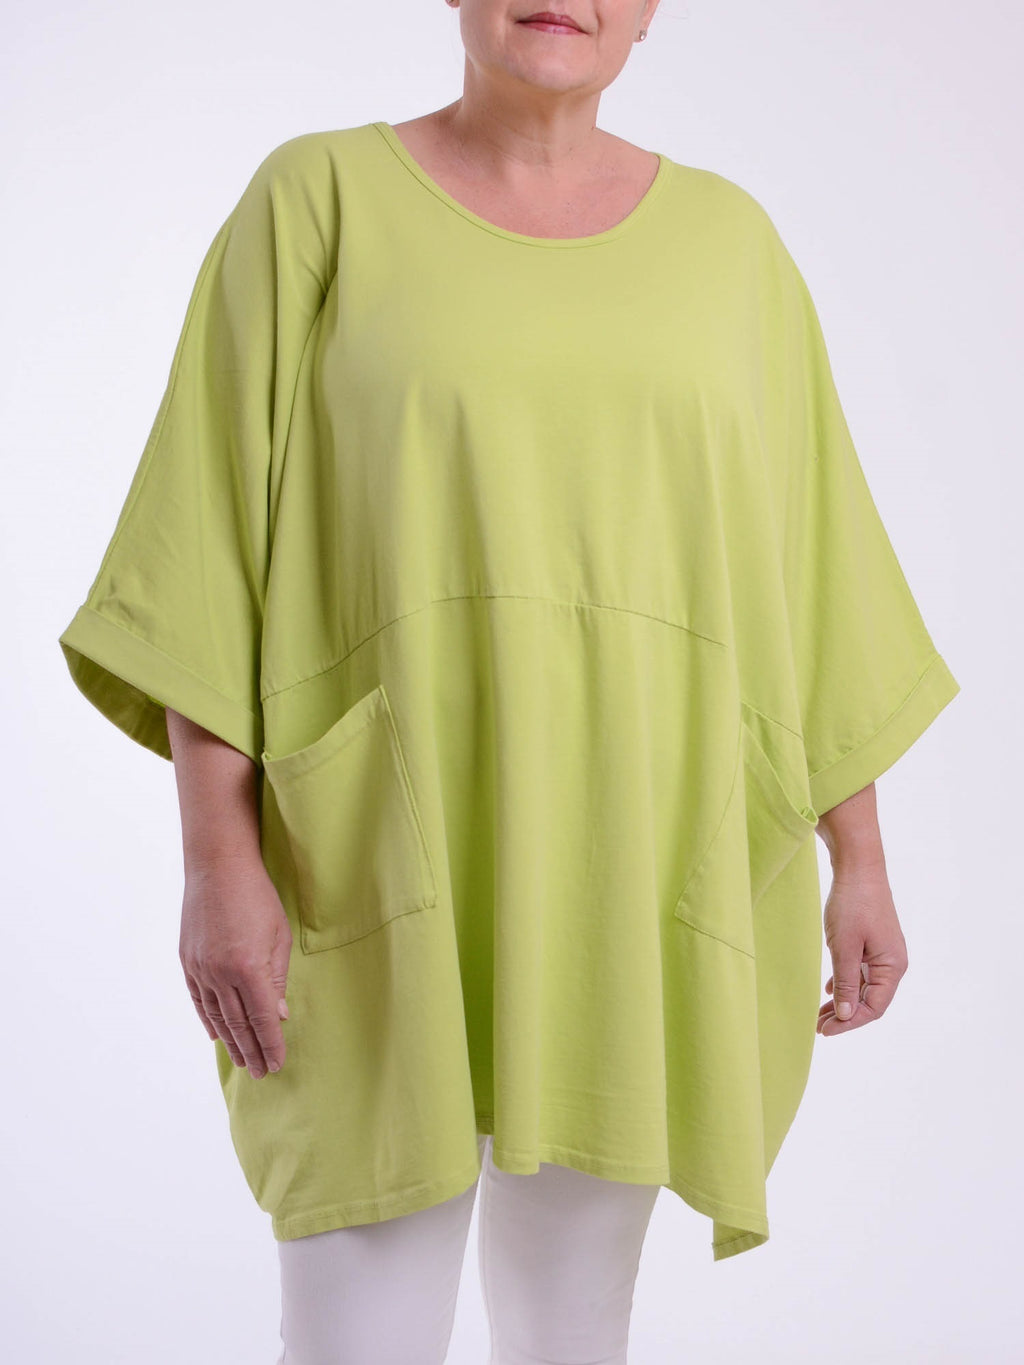 Lagenlook Oversized Jersey Cotton Tunic -10077C PLAIN - Pure Plus Clothing